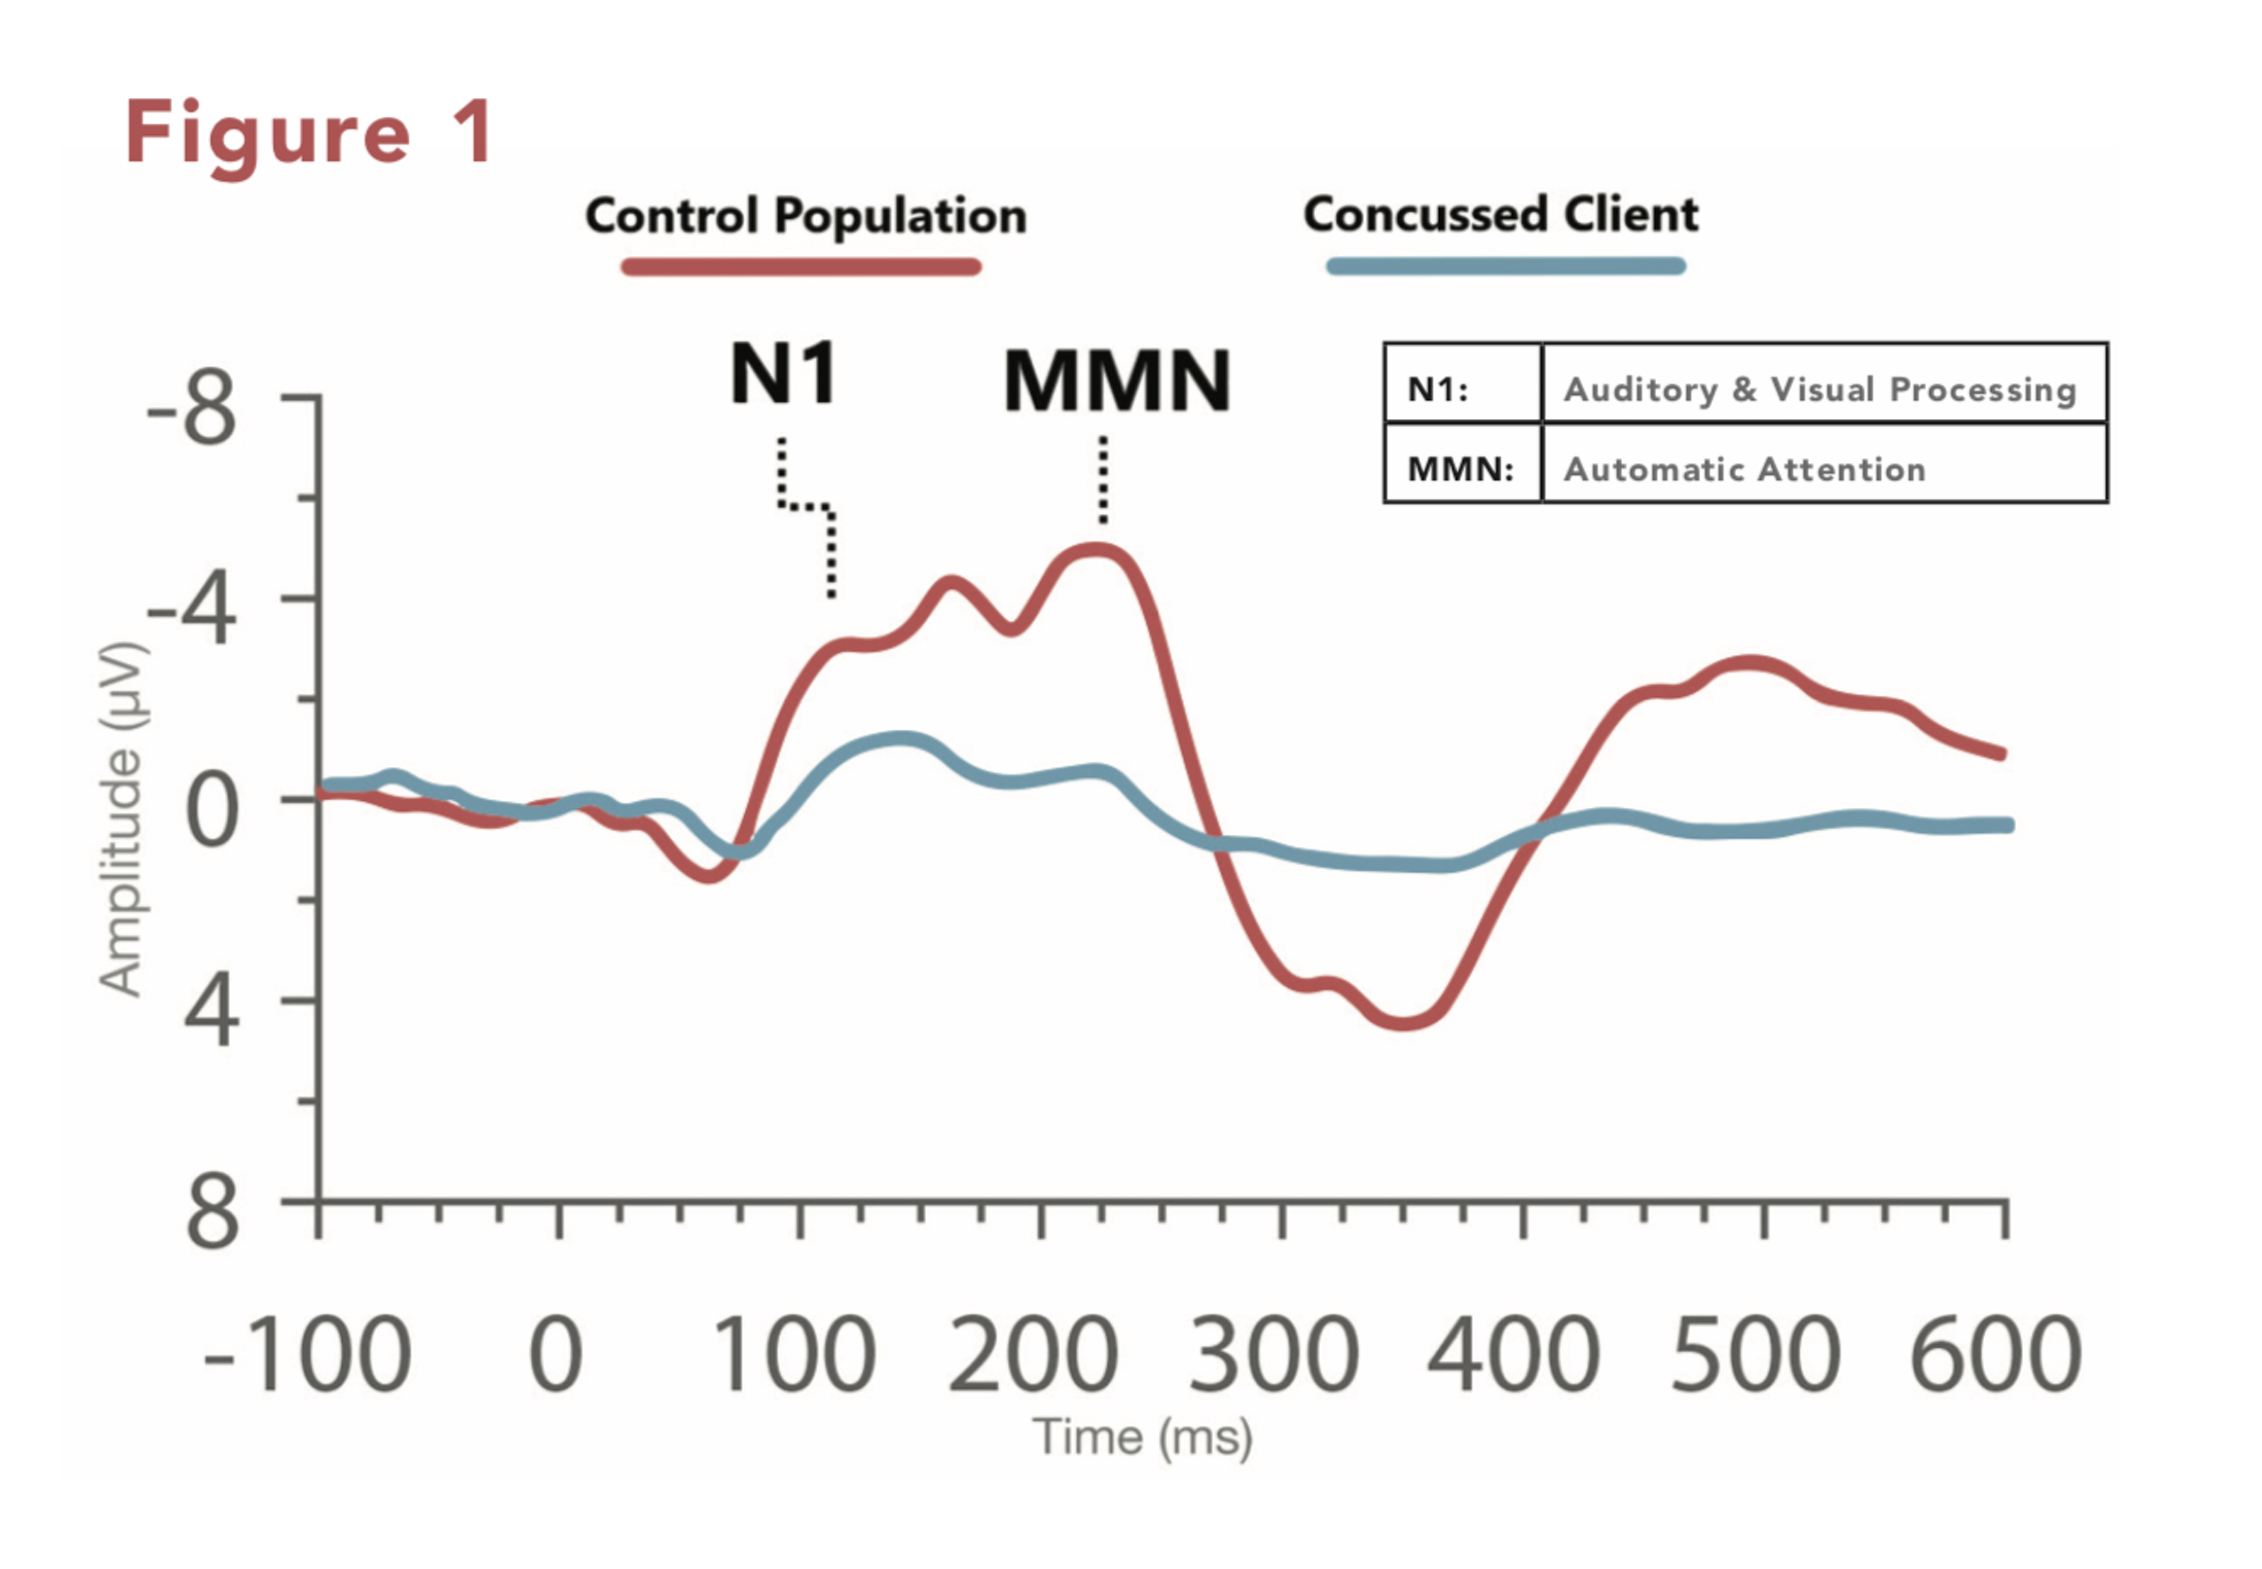 Line graph with time as x-axis and amplitude as y-axis, showing a red line for brain waves of a control patient and a blue line for a concussed patient. Red line has greater amplitude variation than blue, with N1 and MMN points much higher.